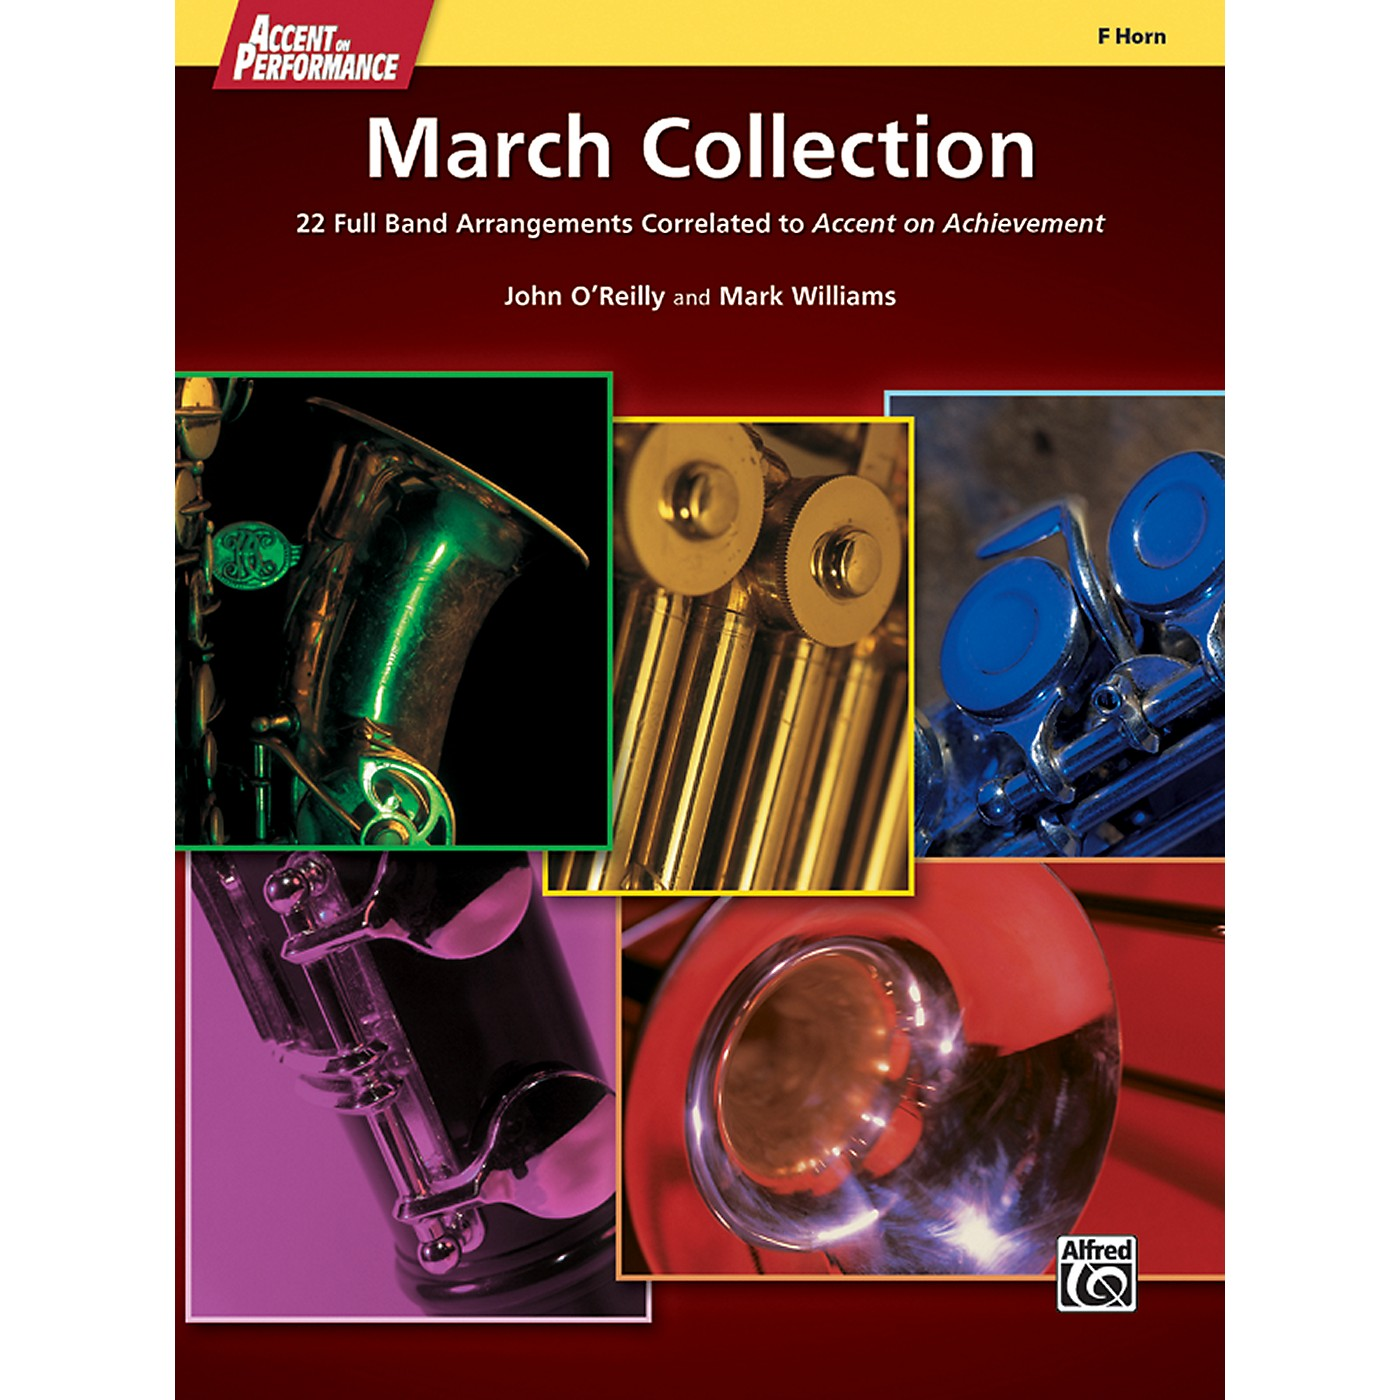 Alfred Accent on Performance March Collection French Horn Book thumbnail